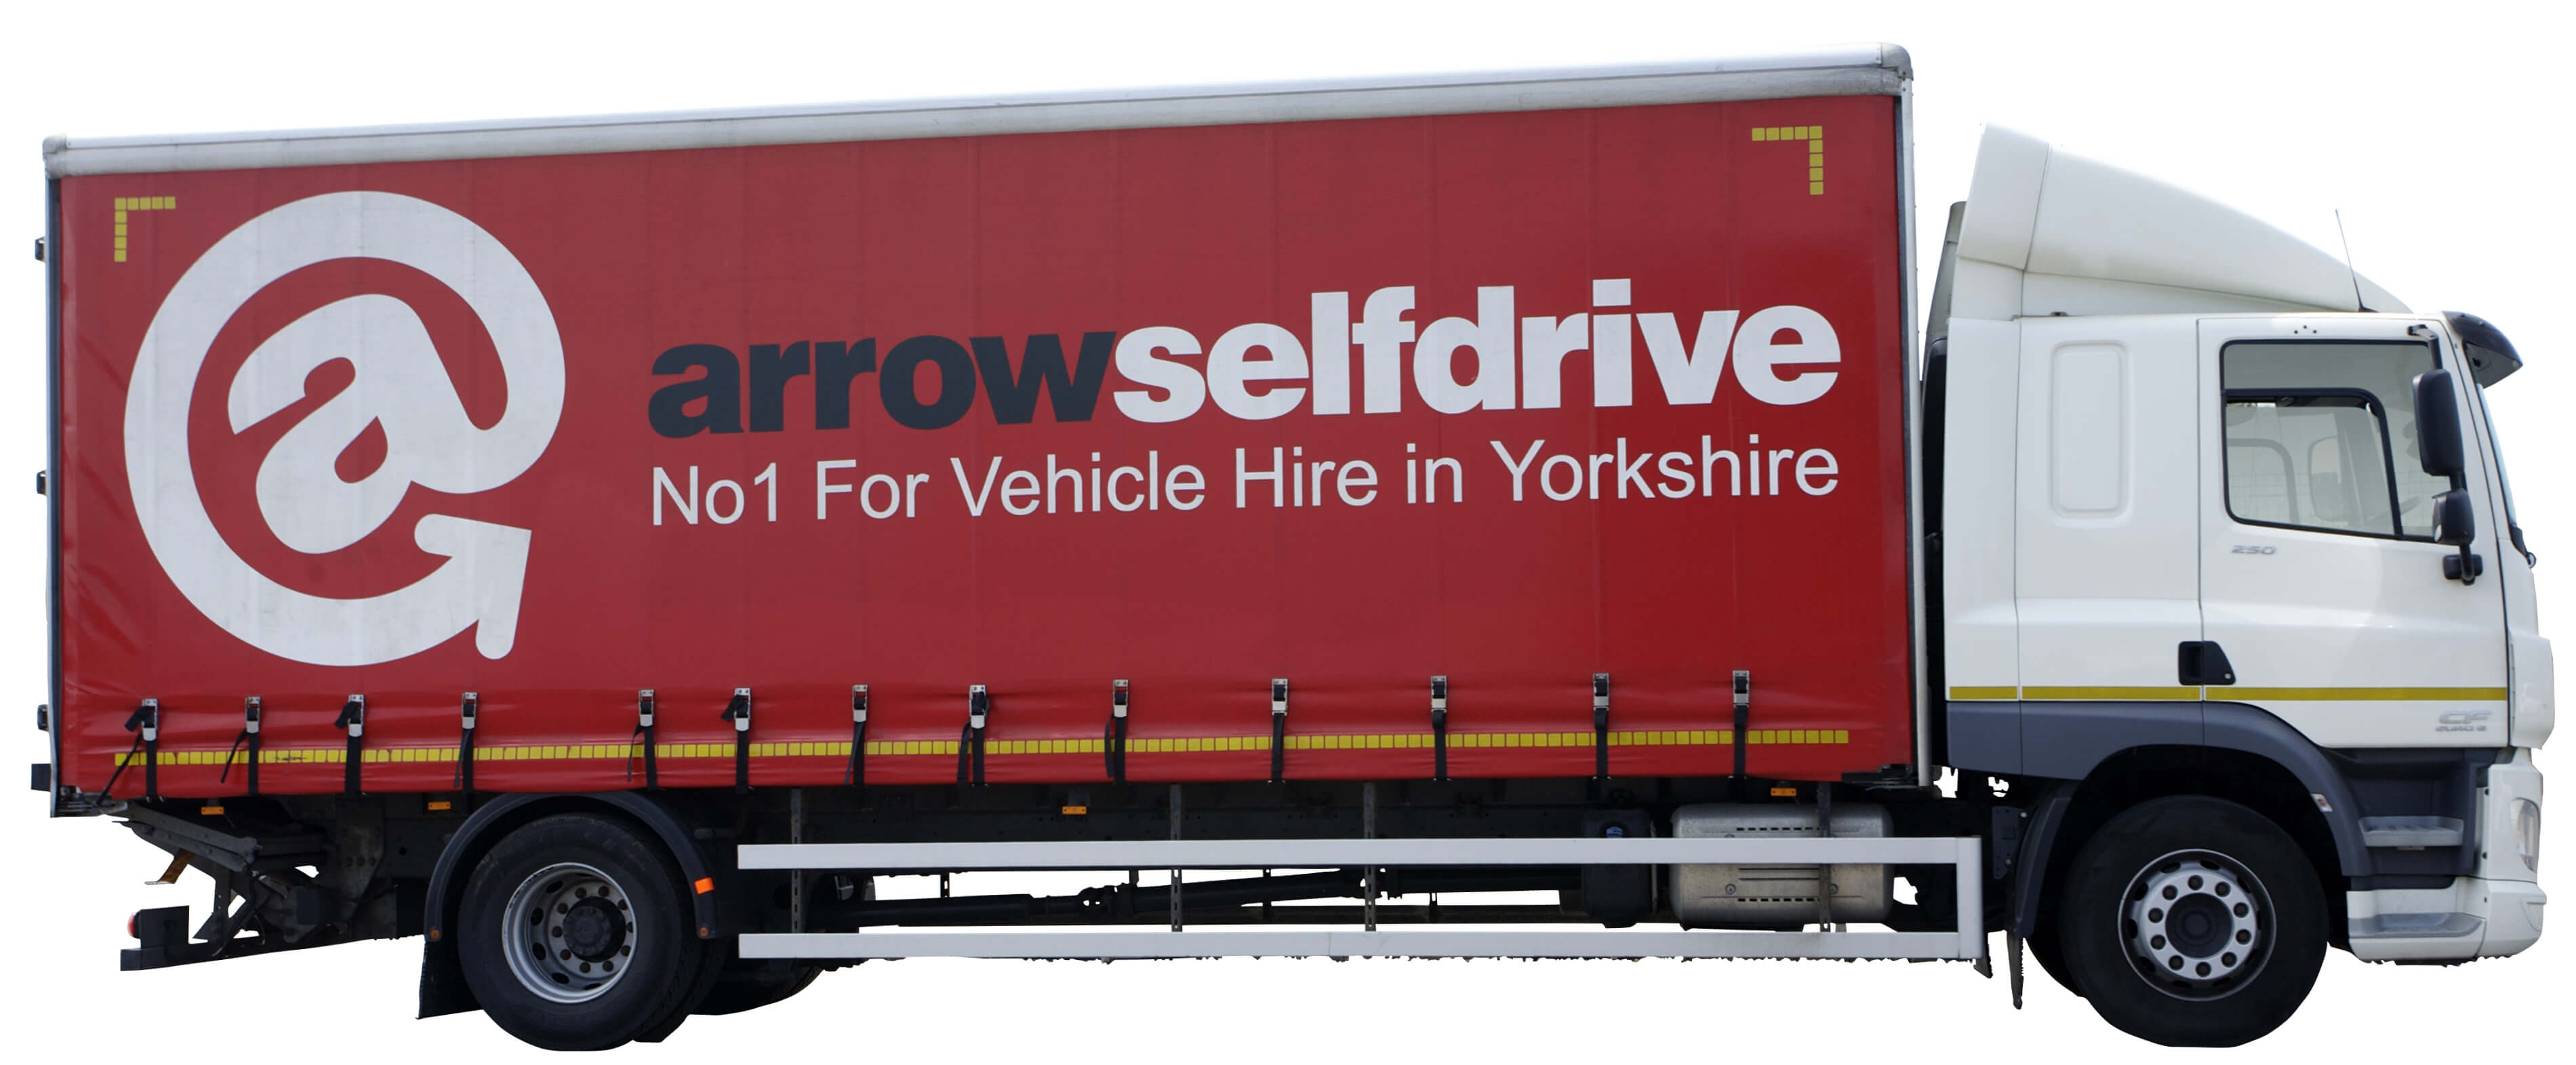 Car And Van Hire Yorkshire Minibus Truck Rental Arrow Self Drive